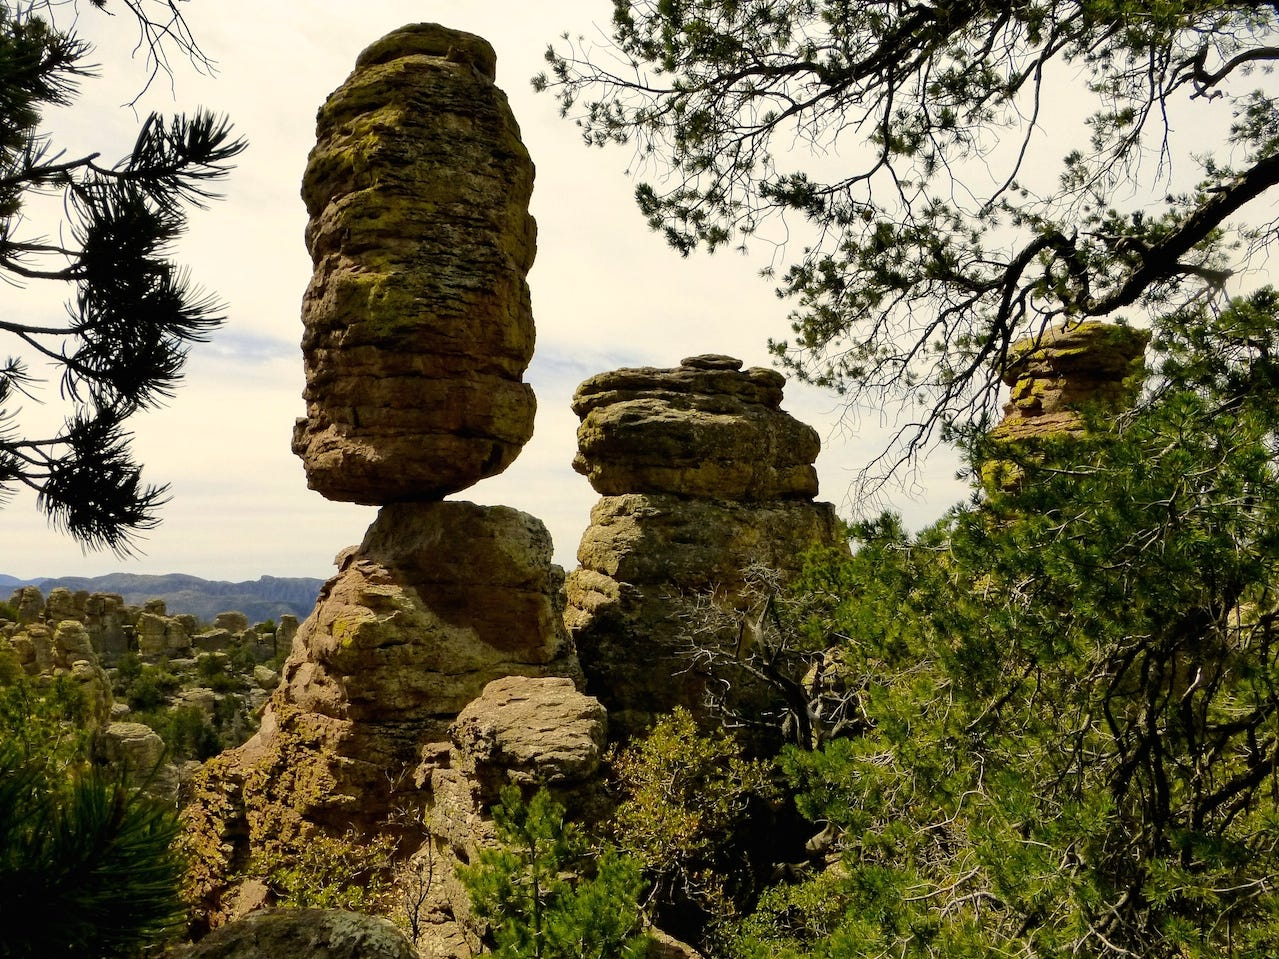 Chiricahua National Monument, southeast of Willcox, features a campground, a scenic drive, a historic district and hiking trails past distinctive rock pinnacles, spires and hoodoos.